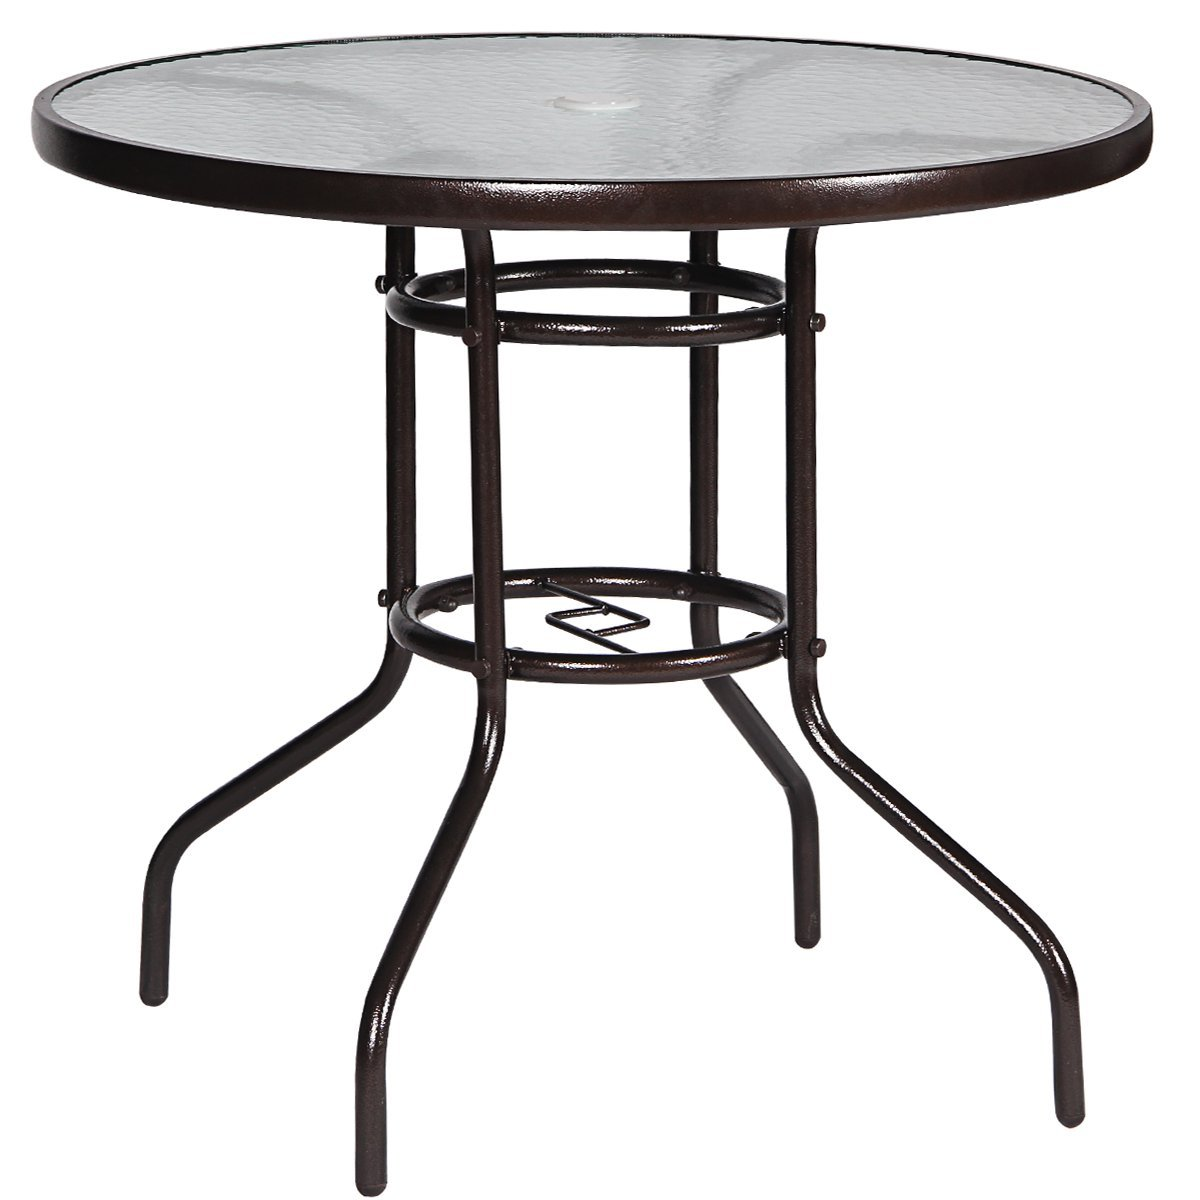 FurniTure Outdoor Tempered Glass Table Patio Dining Table 32'' Outdoor Coffee Table Garden Umbrella Table Bistro Table Round Table, Dark Chocolate by FurniTure (Image #1)